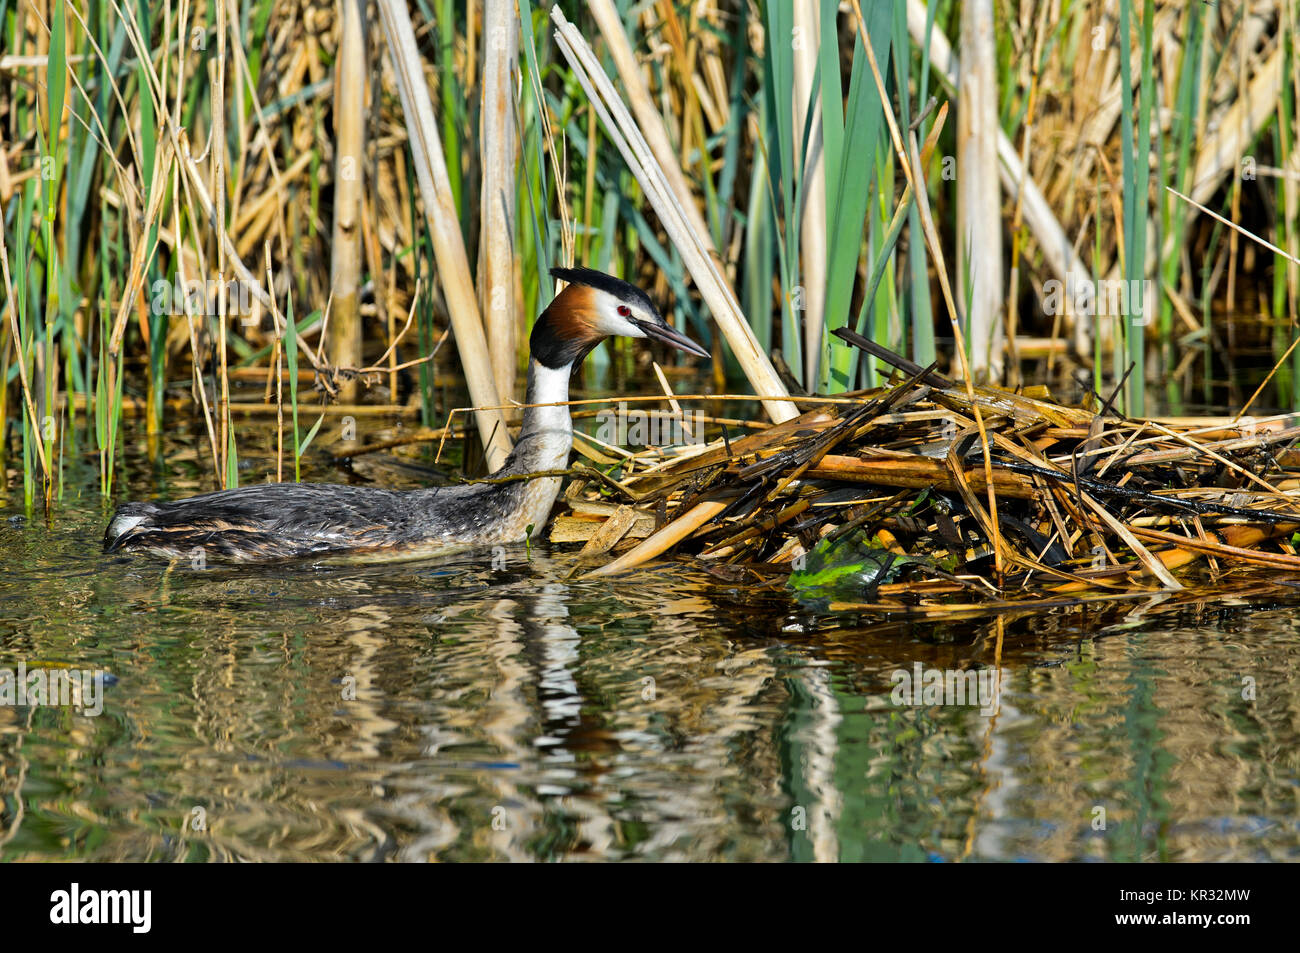 Great crested grebe (Podiceps cristatus) at the nest, Netherlands - Stock Image